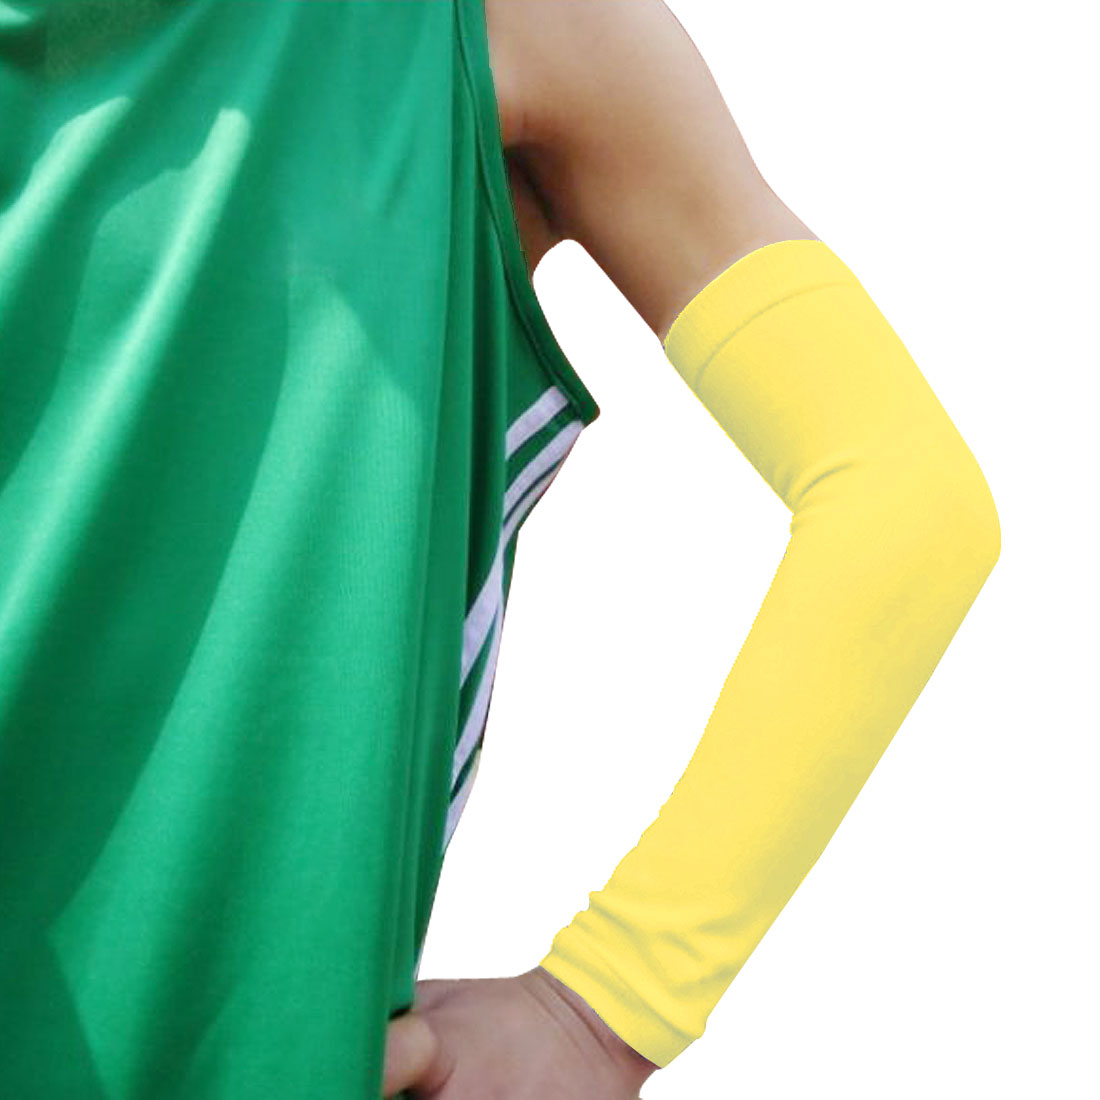 Outdoors Sports Elastic Fabric Breathable Wrap Elbow Support Protector Yellow